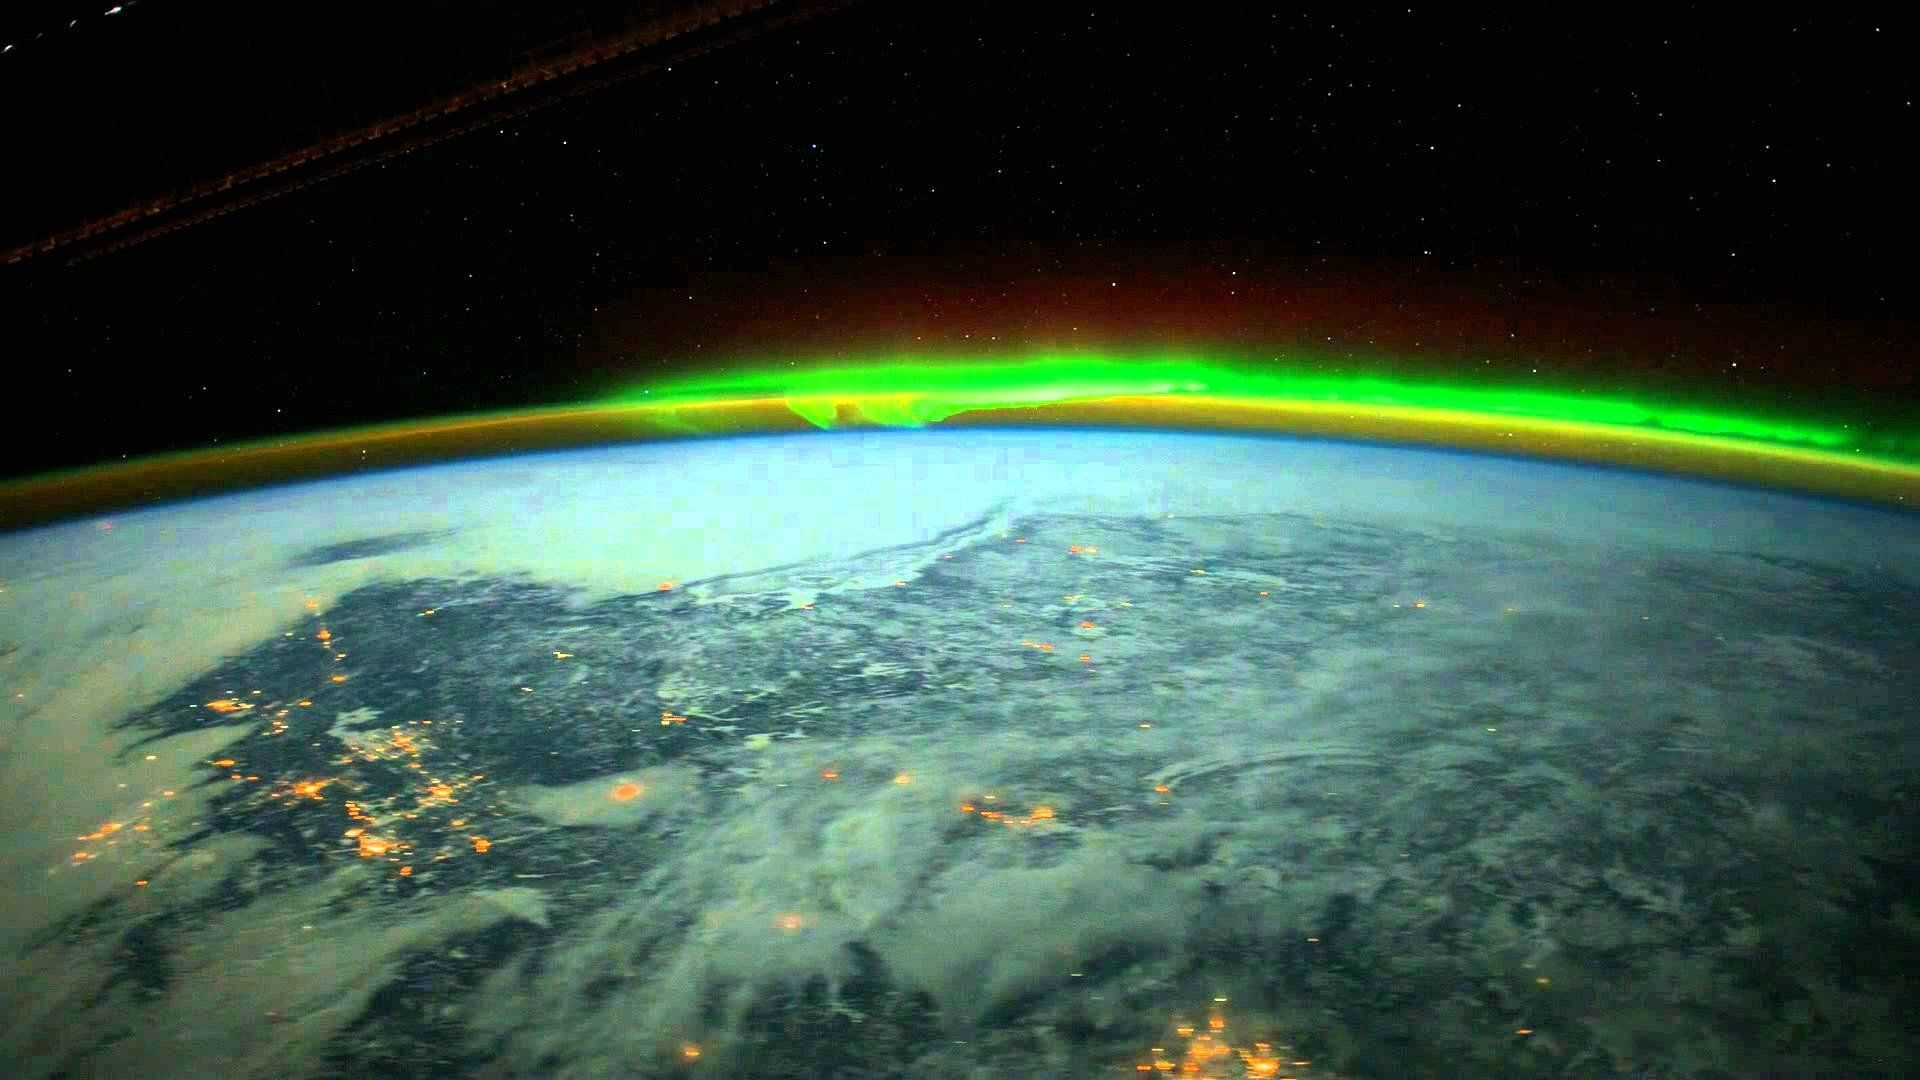 aurora borealis from space | Wallpaper aurora from space ...